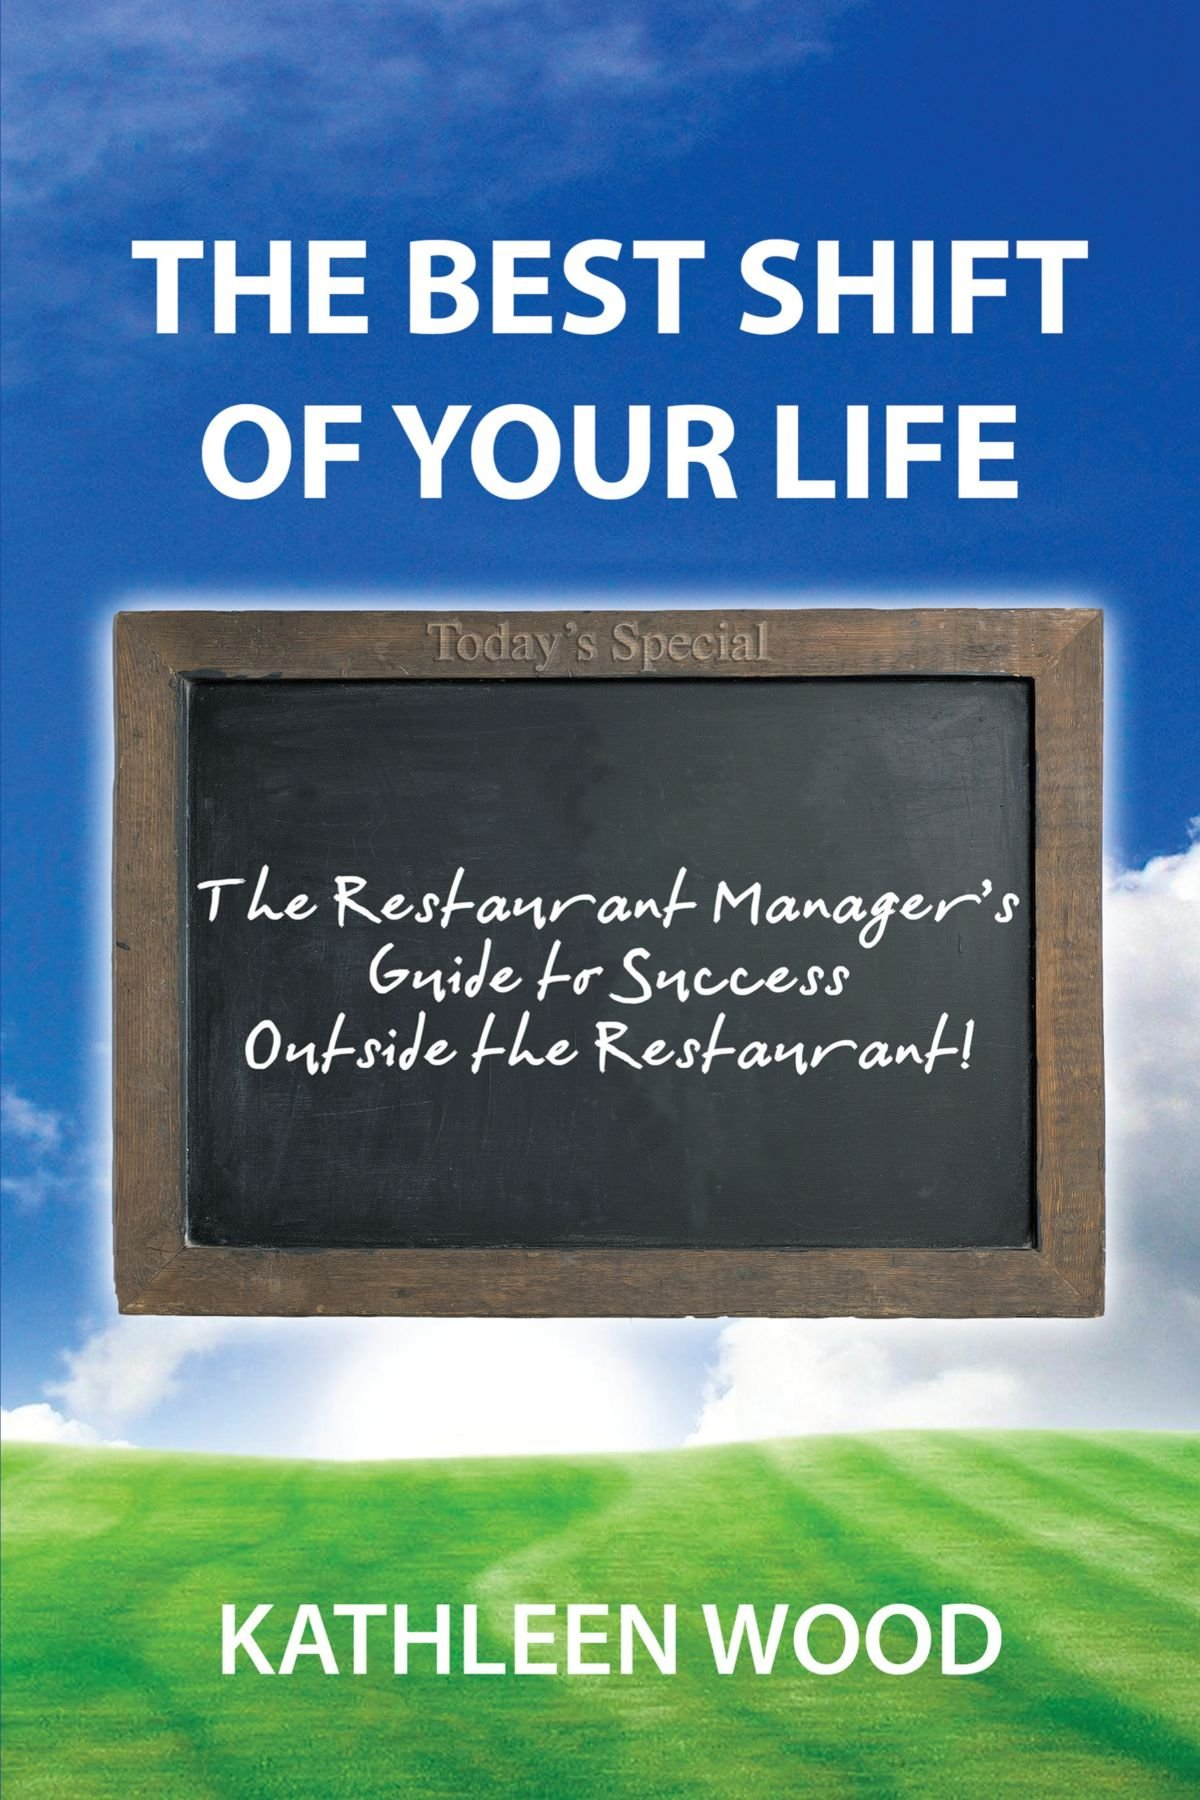 The Best Shift of Your Life: The Restaurant Manager's Guide to Success outside the Restaurant! PDF